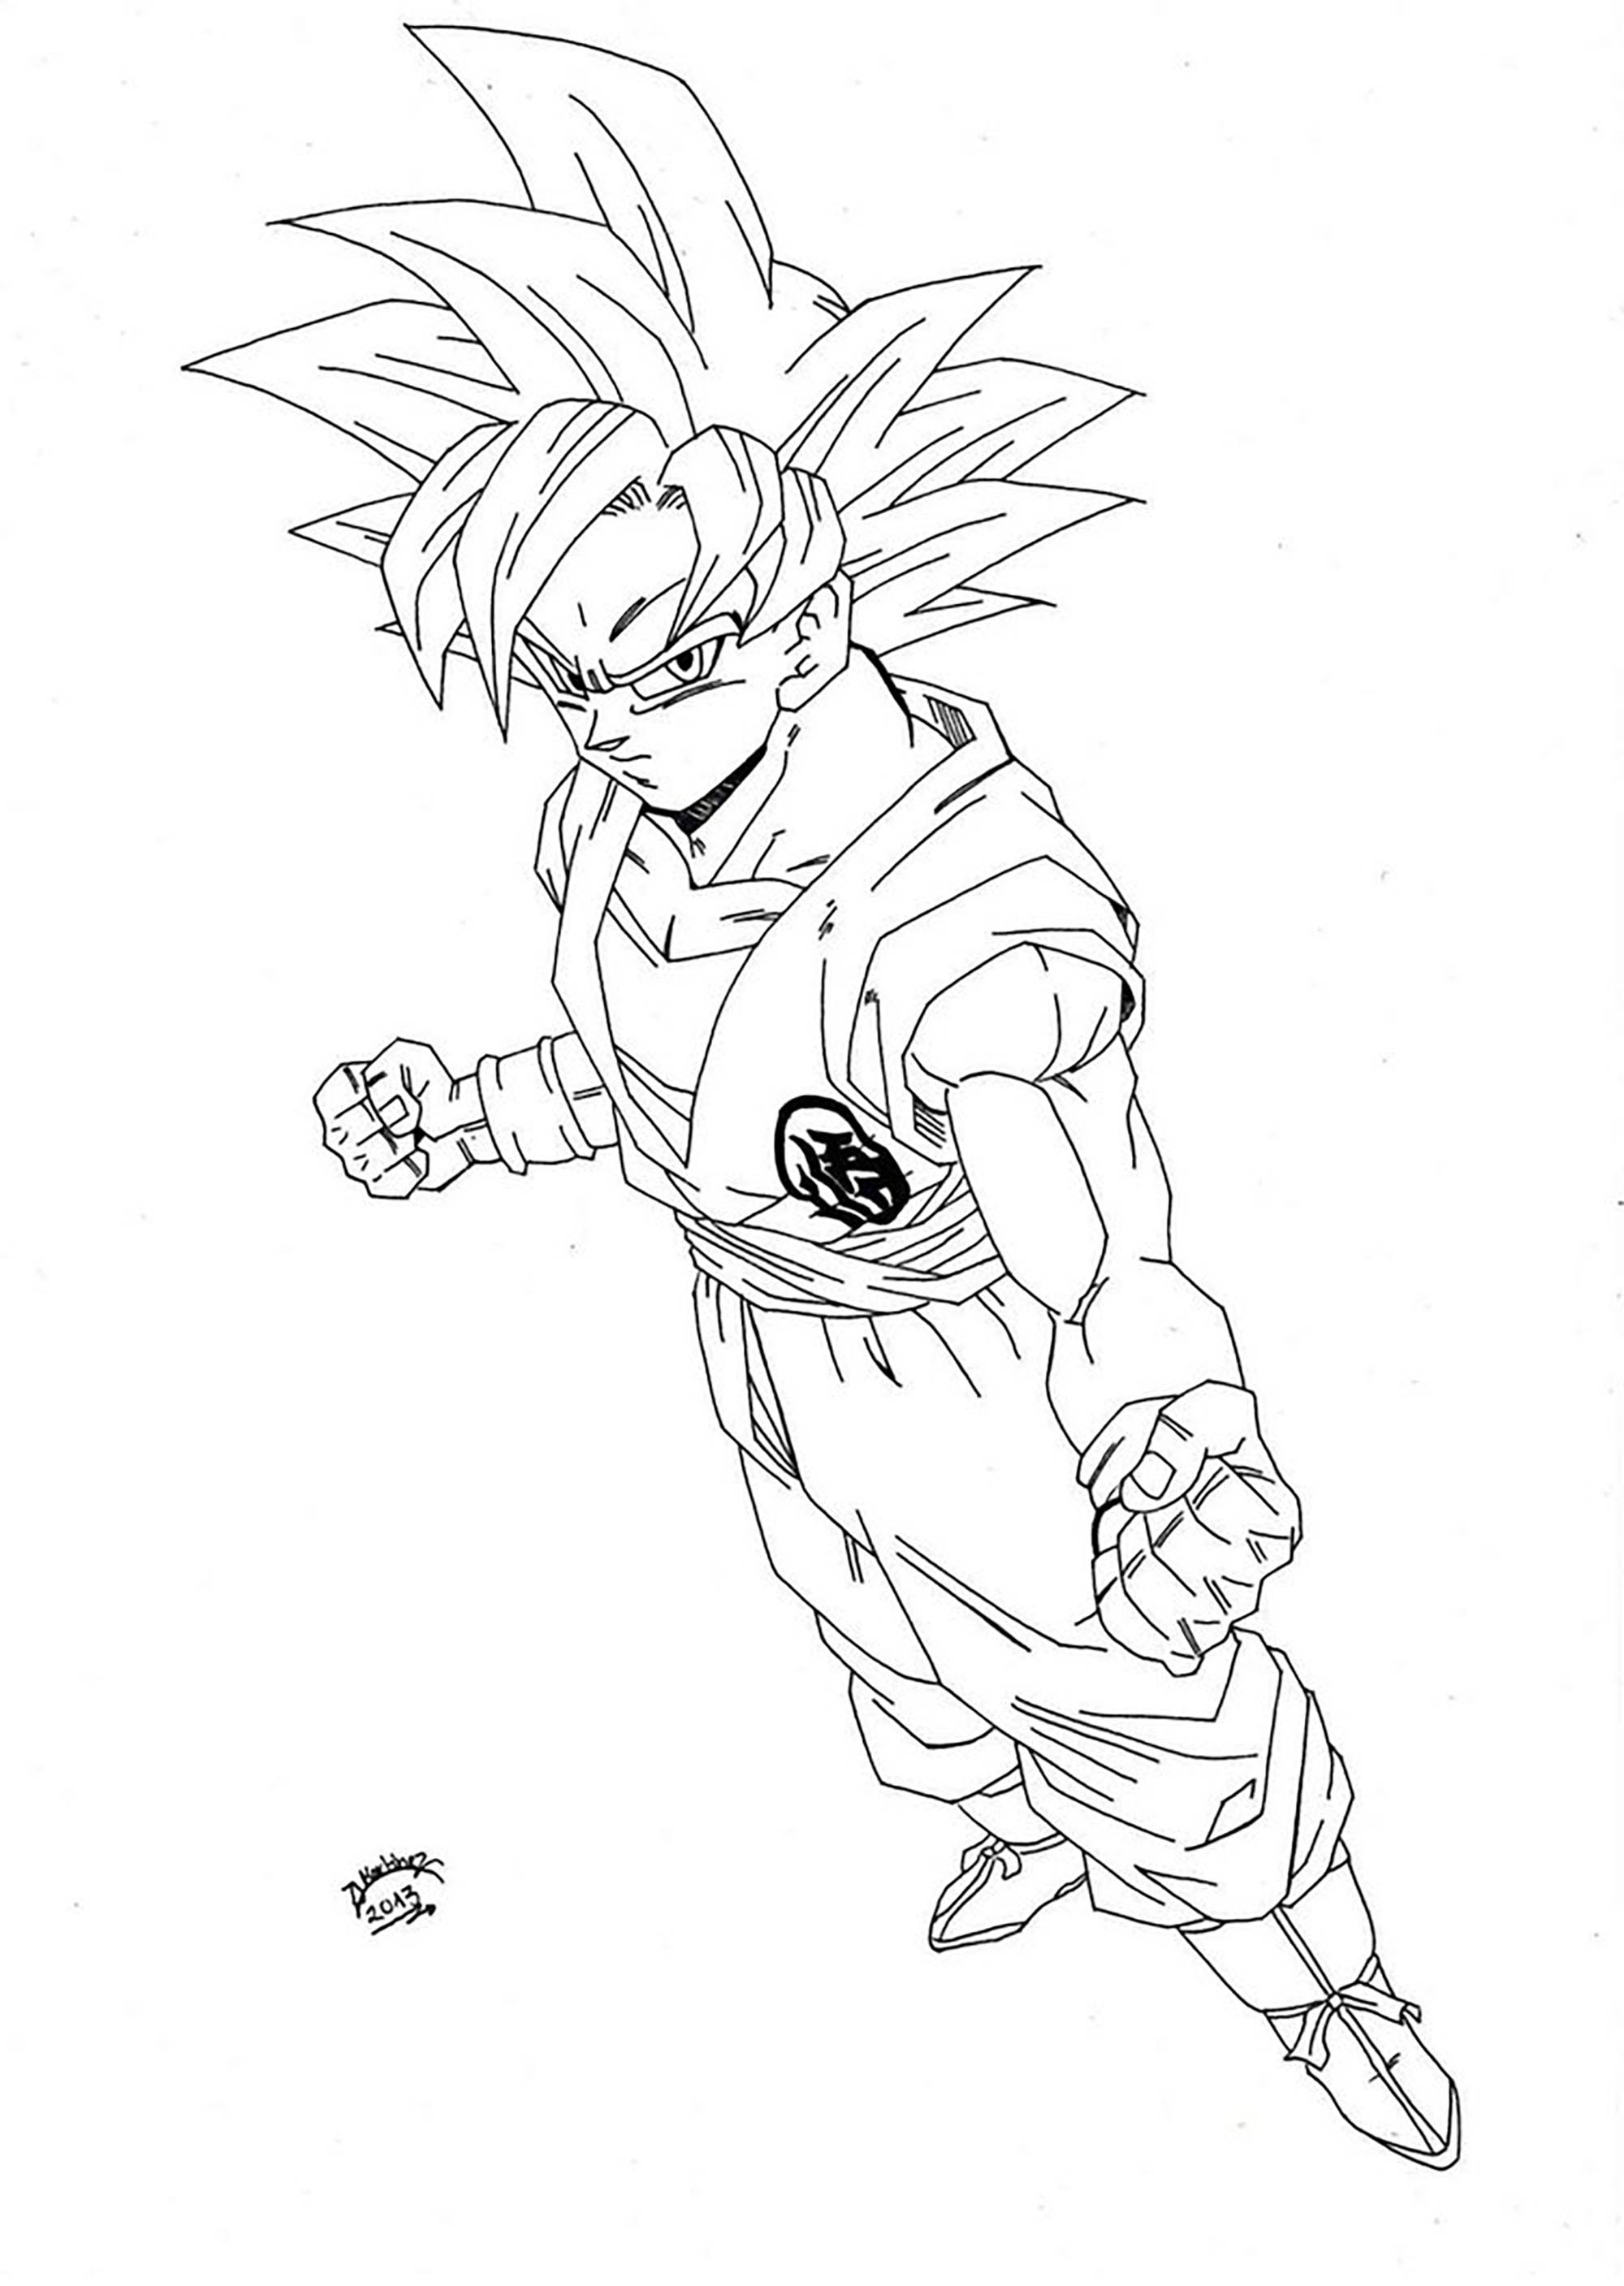 Dragon ball gratuit 8 coloriage dragon ball z - Coloriage gratuit dragon ball z ...